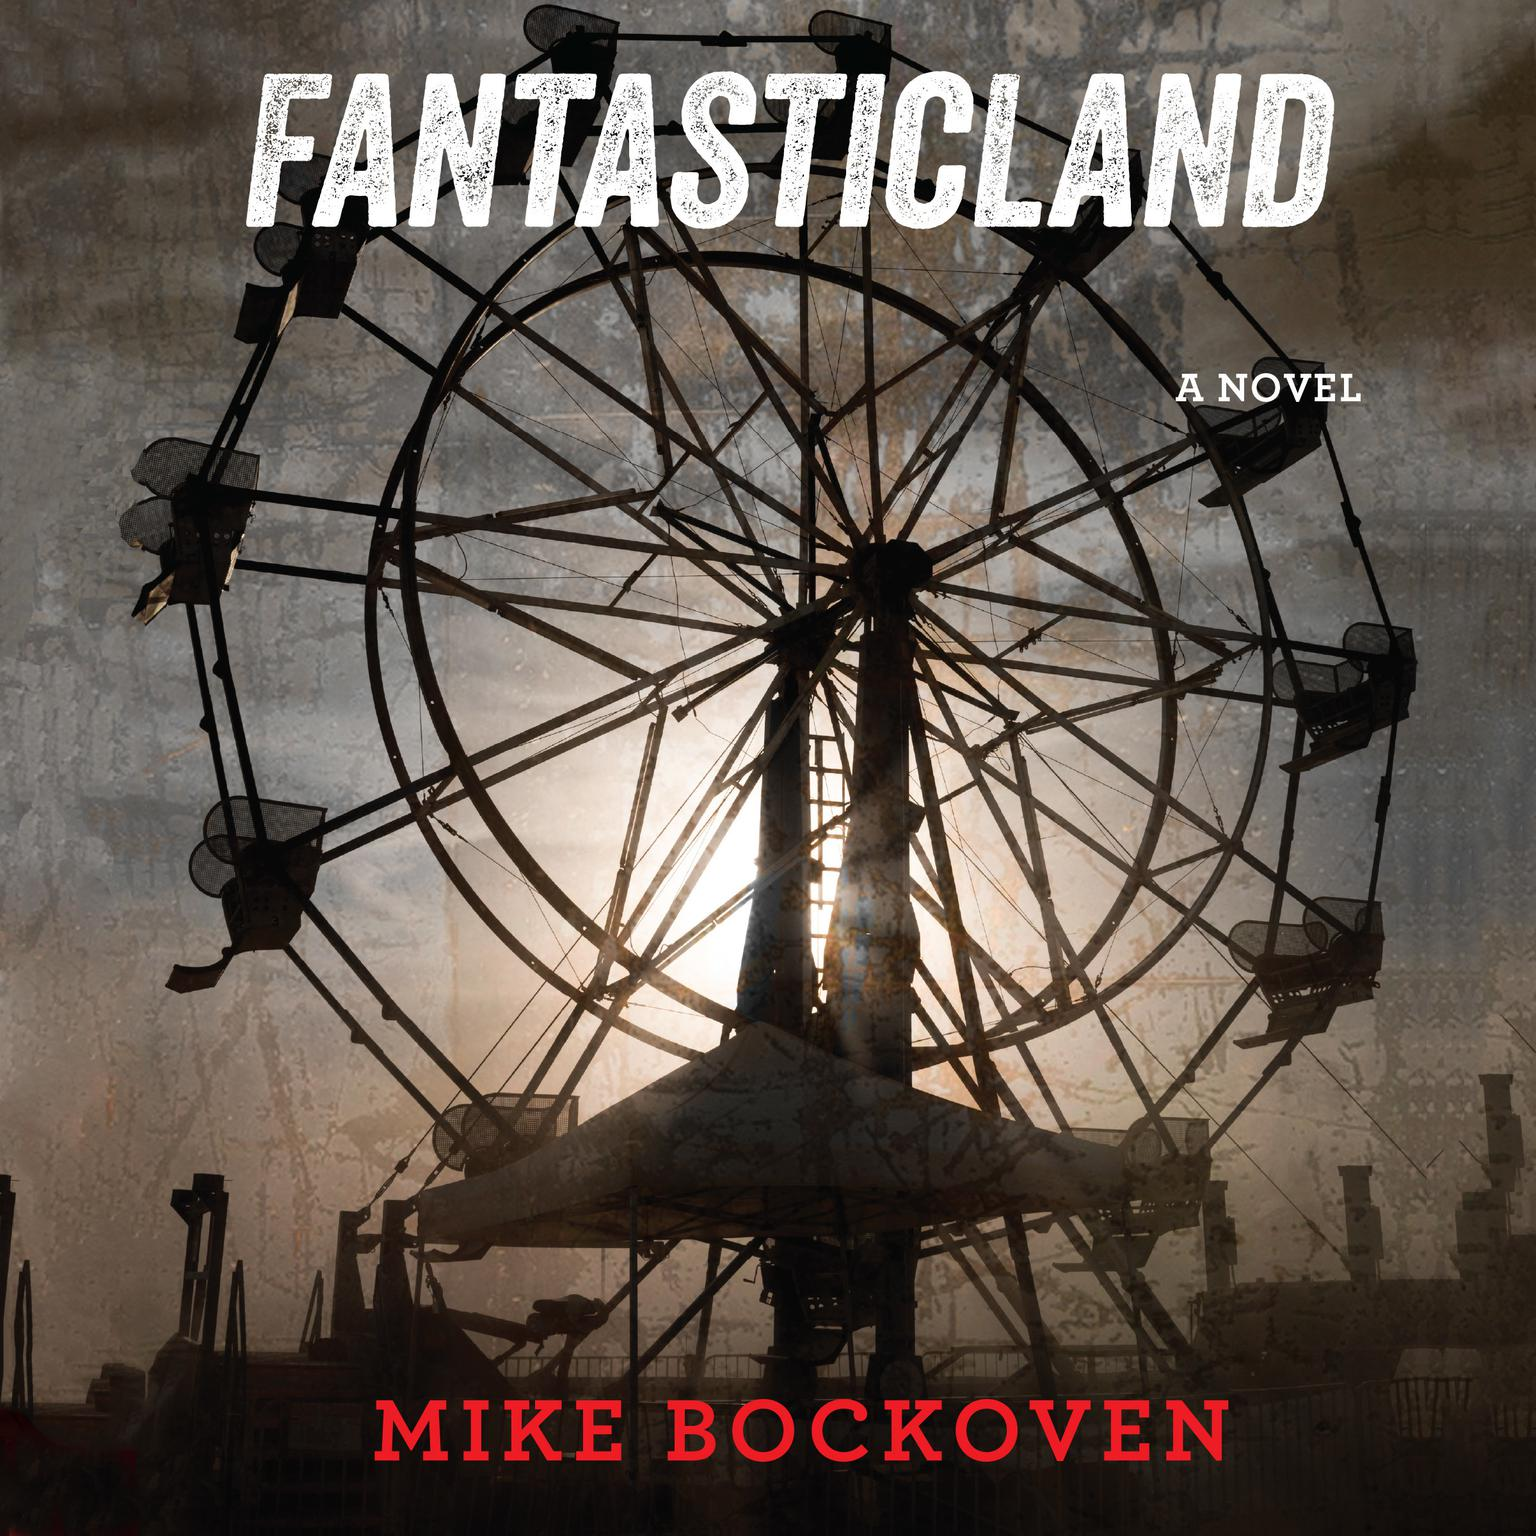 FantasticLand: A Novel Audiobook, by Mike Bockoven